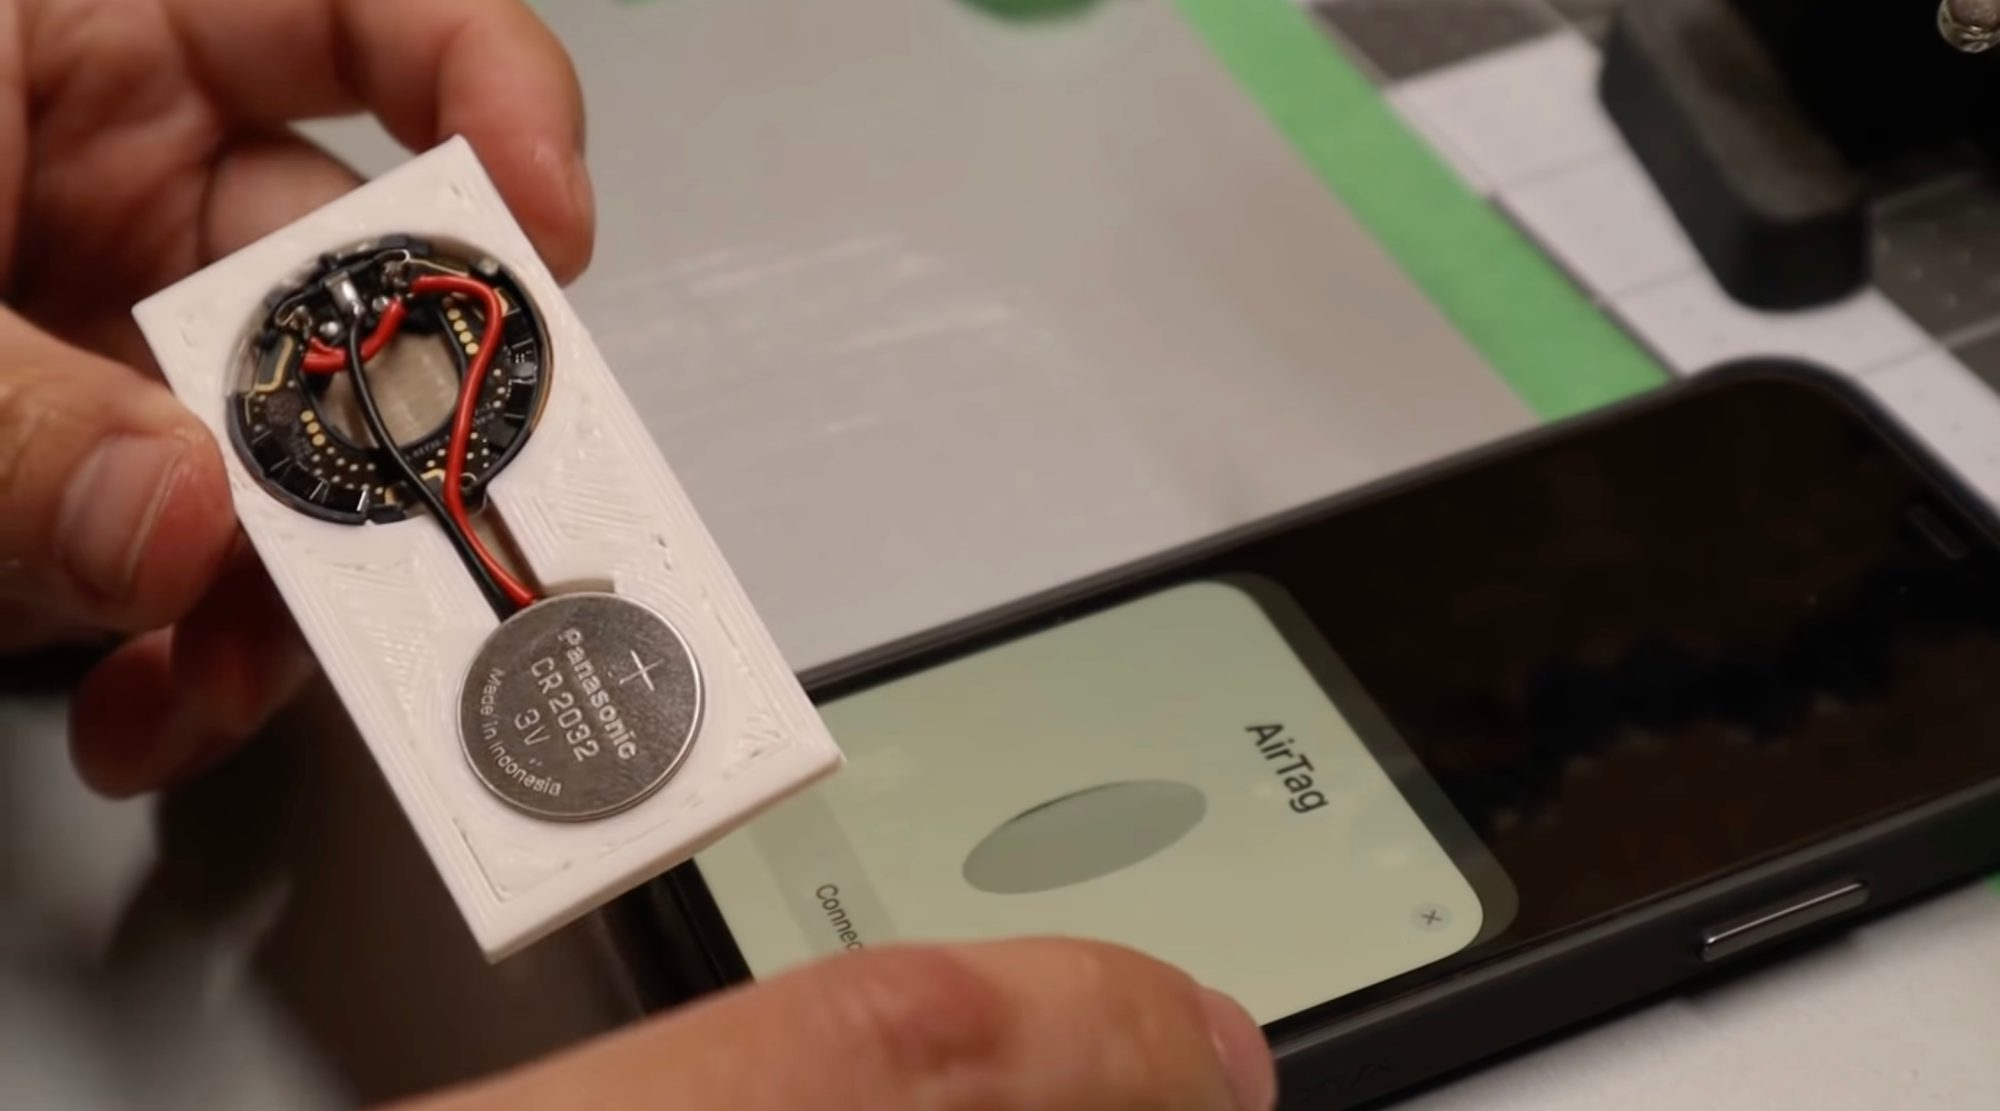 ❤ User rebuilds AirTag as a thinner card that fits into wallets